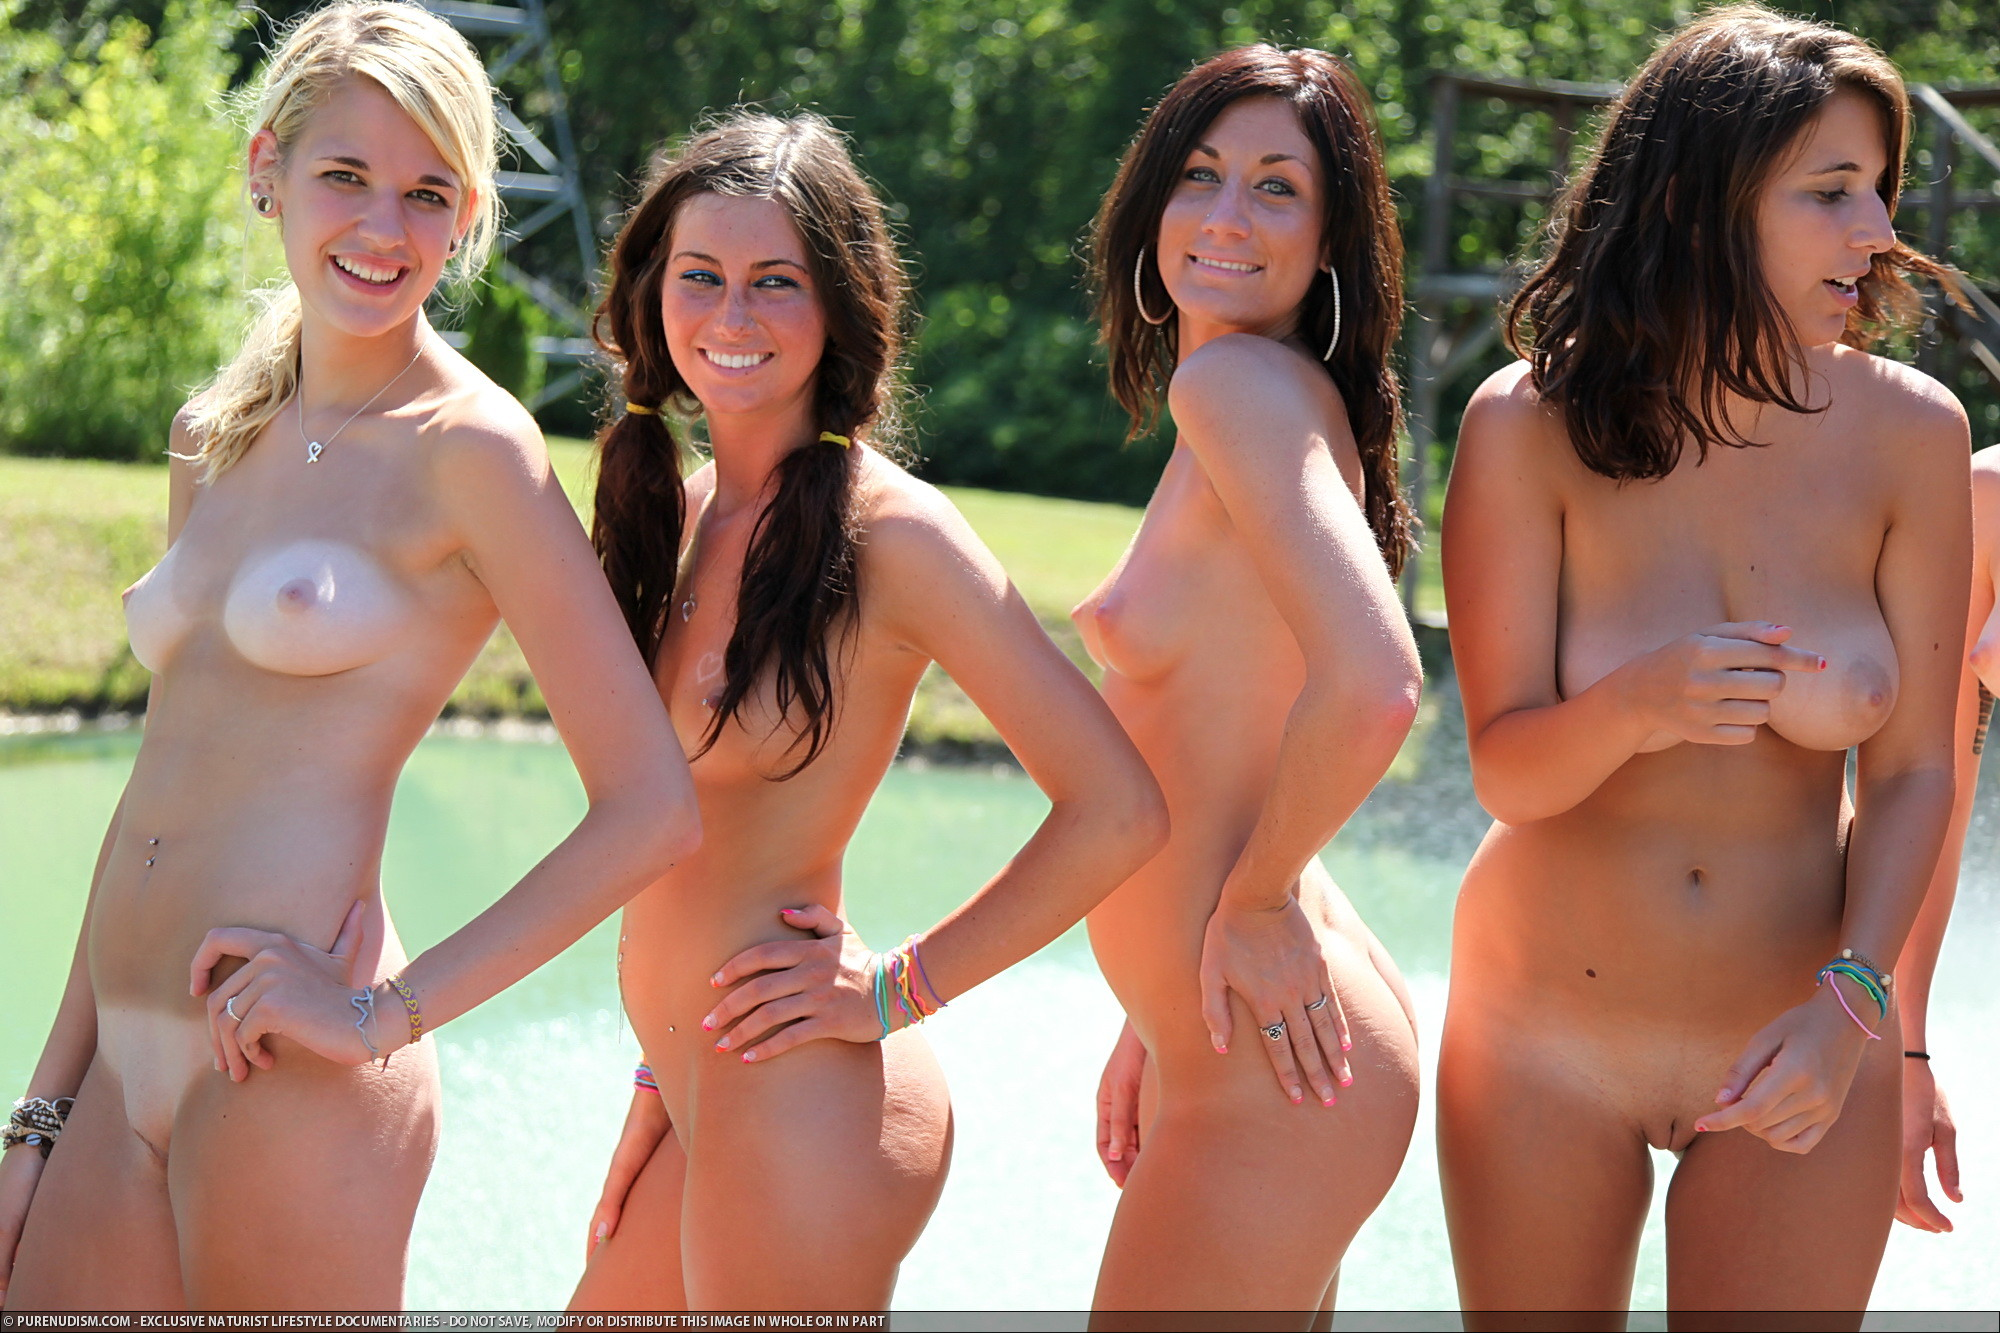 Speaking, Amateur nude college girls groups seems remarkable